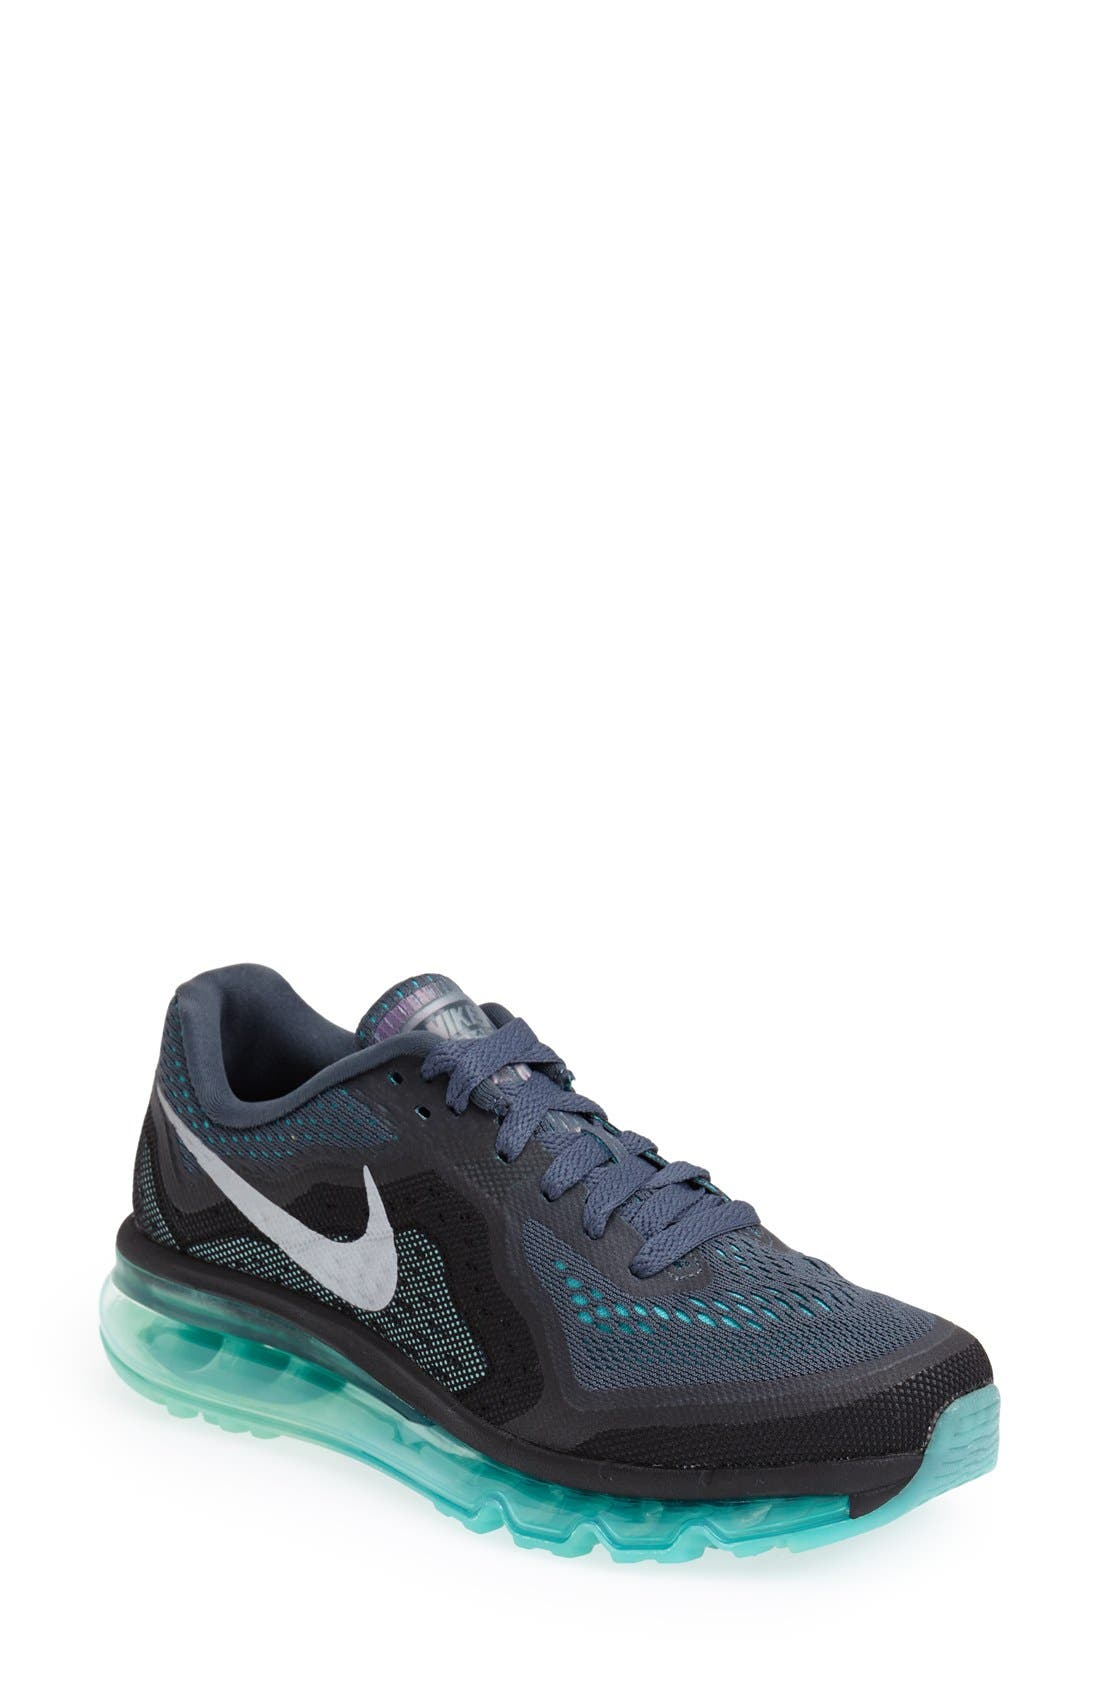 Alternate Image 1 Selected - Nike 'Air Max 2014' Running Shoe (Women)